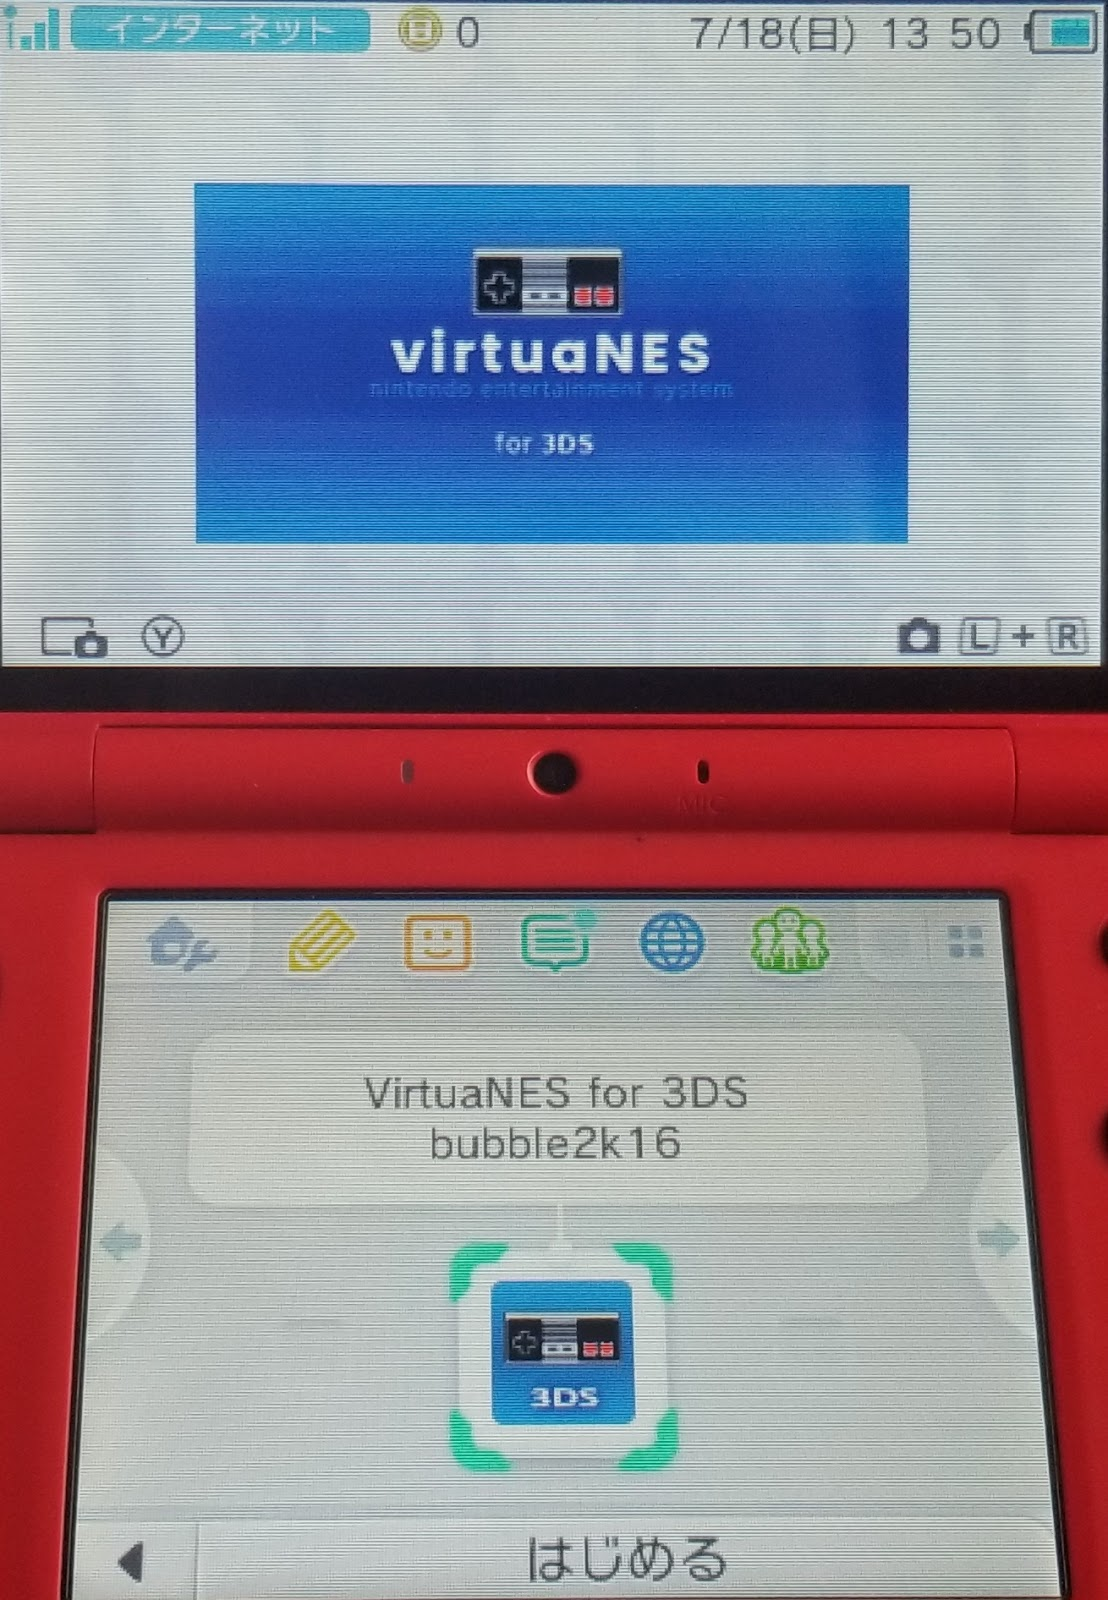 virtuanes for 3ds